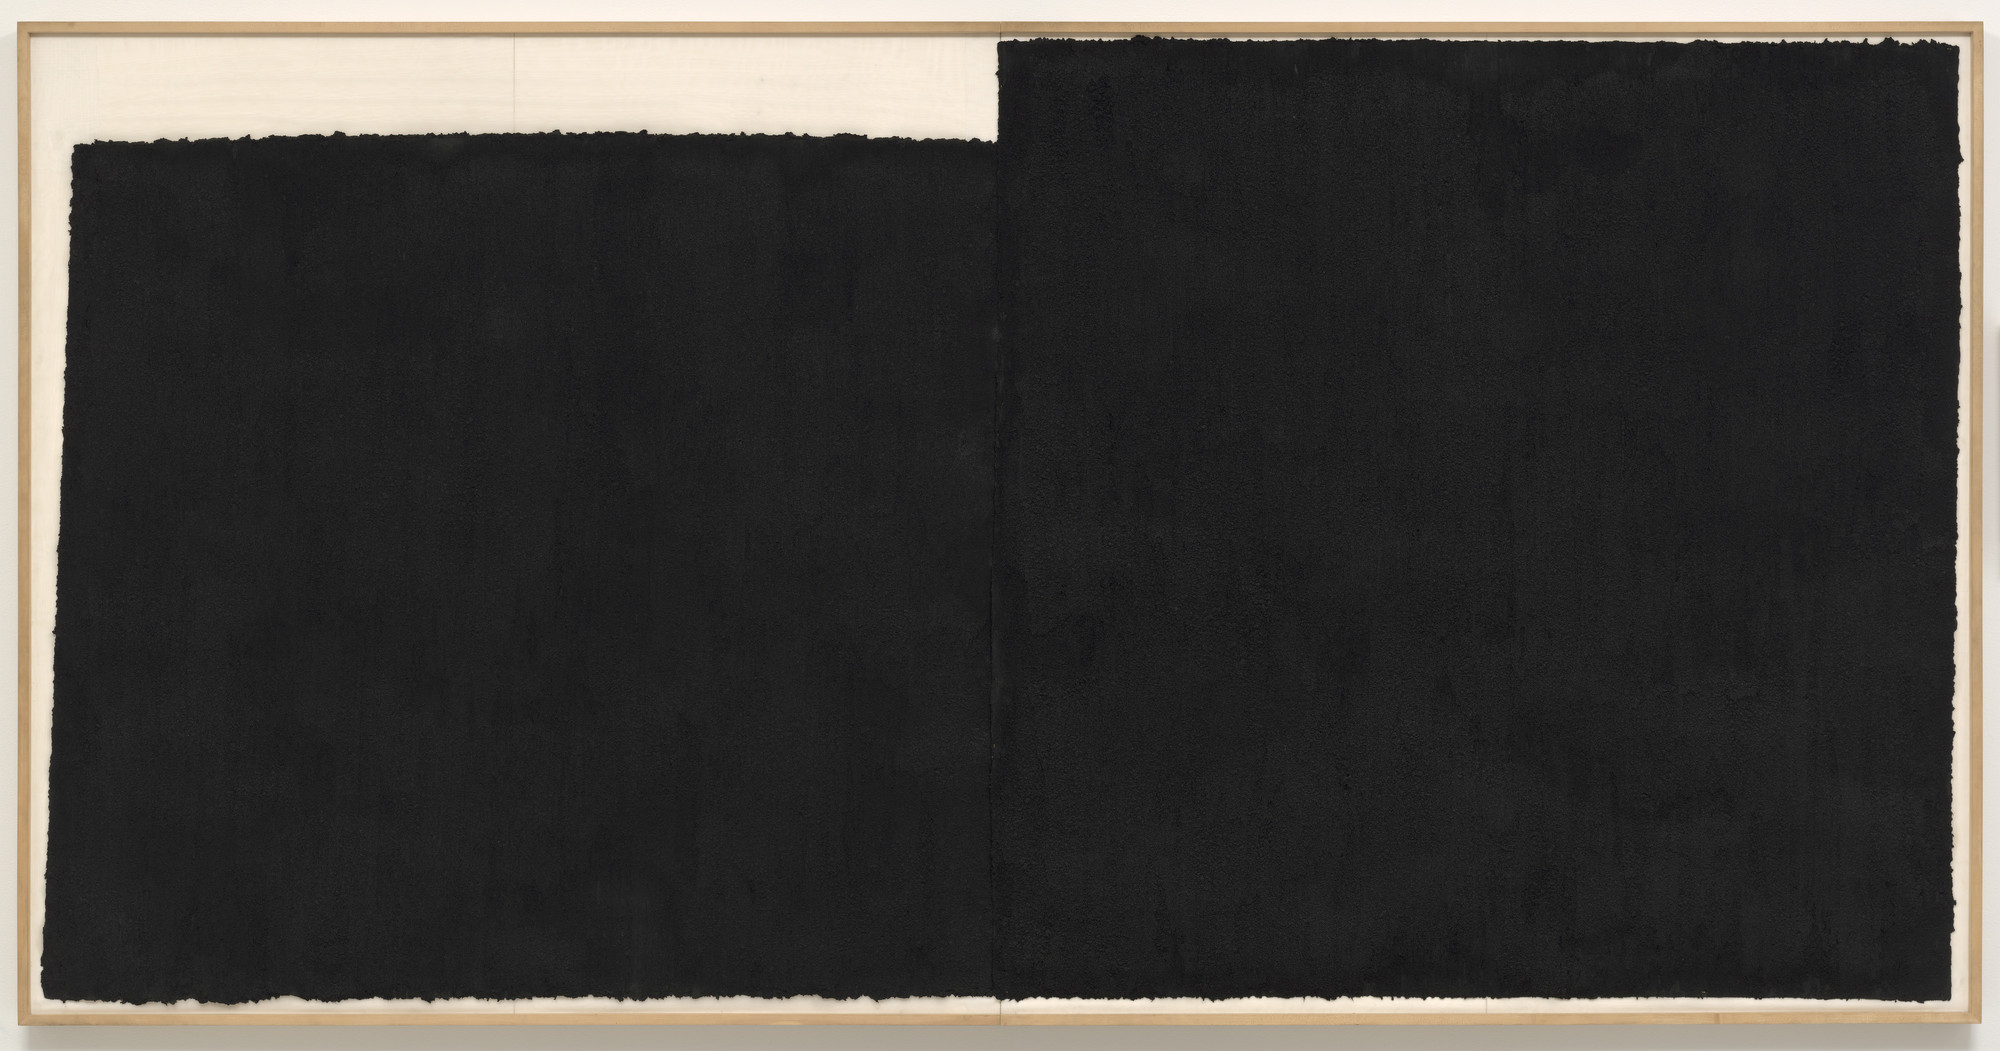 Richard Serra. The Truce. 1991